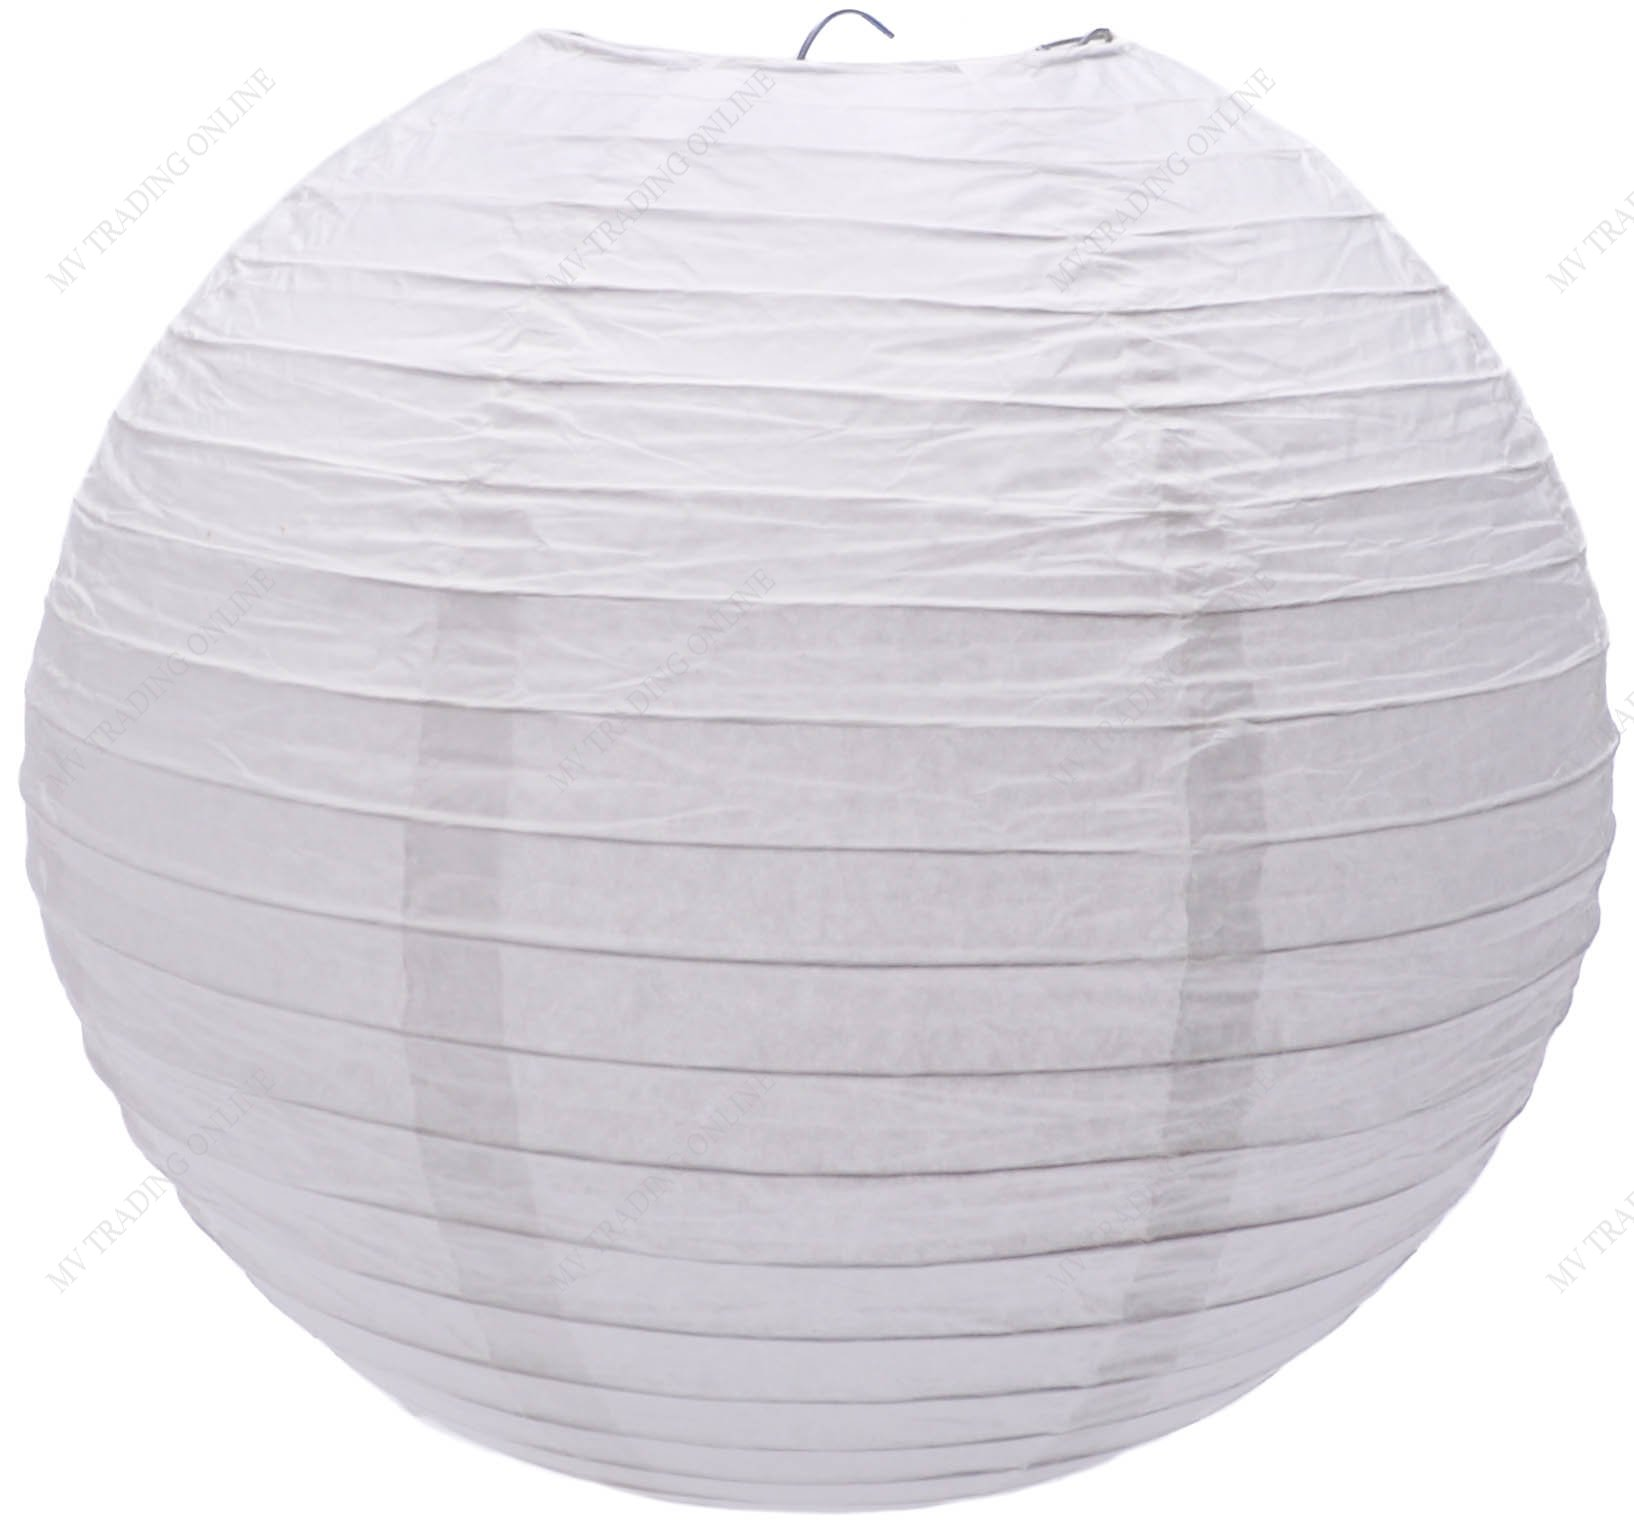 M.V. Trading LNT24ER-WH Colorful Chinese/Japanese Round Paper Lanterns with Metal Frame, 24-Inches, White